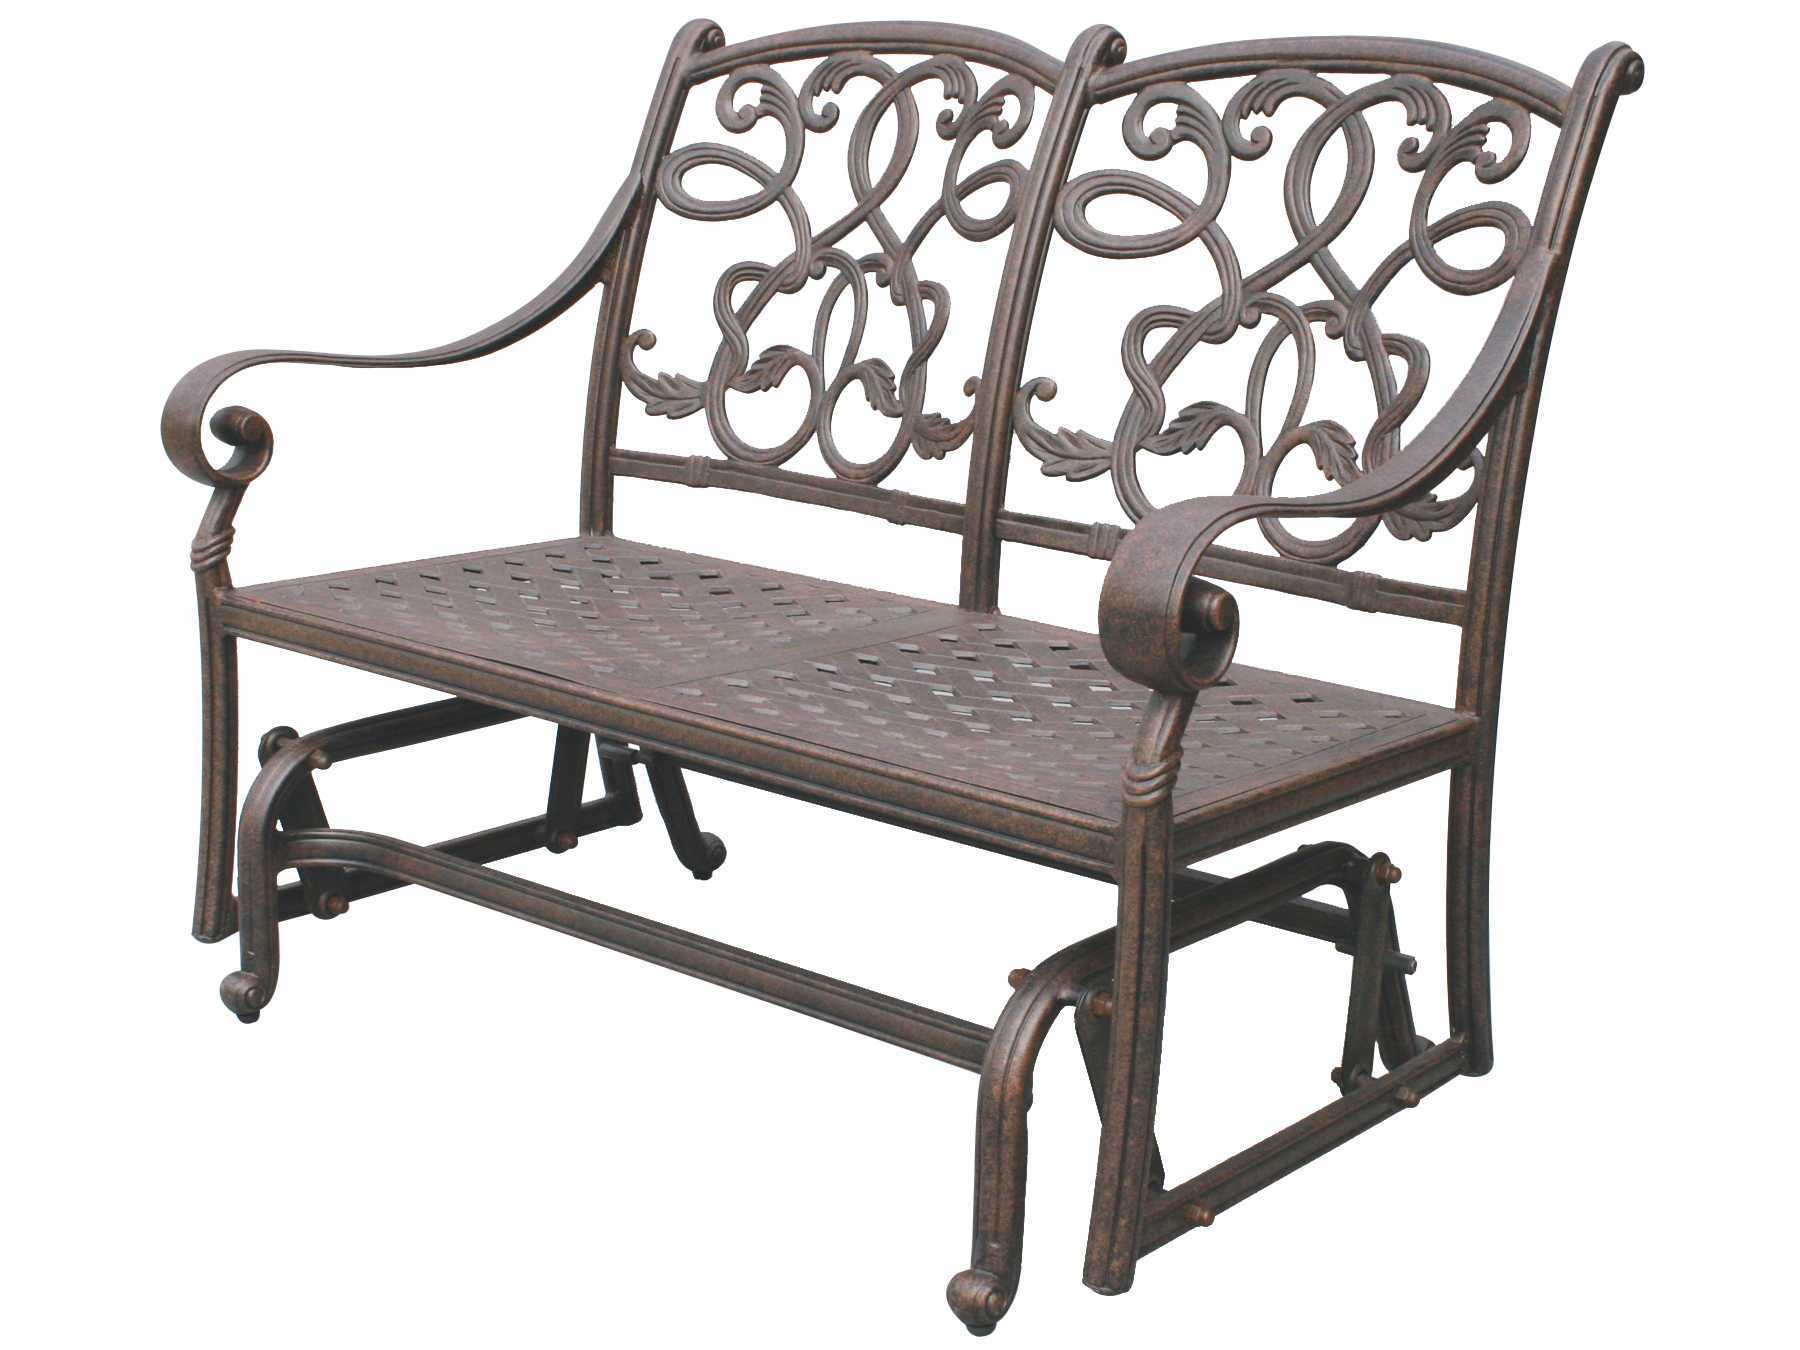 Pleasant Darlee Outdoor Living Standard Santa Monica Cast Aluminum Onthecornerstone Fun Painted Chair Ideas Images Onthecornerstoneorg